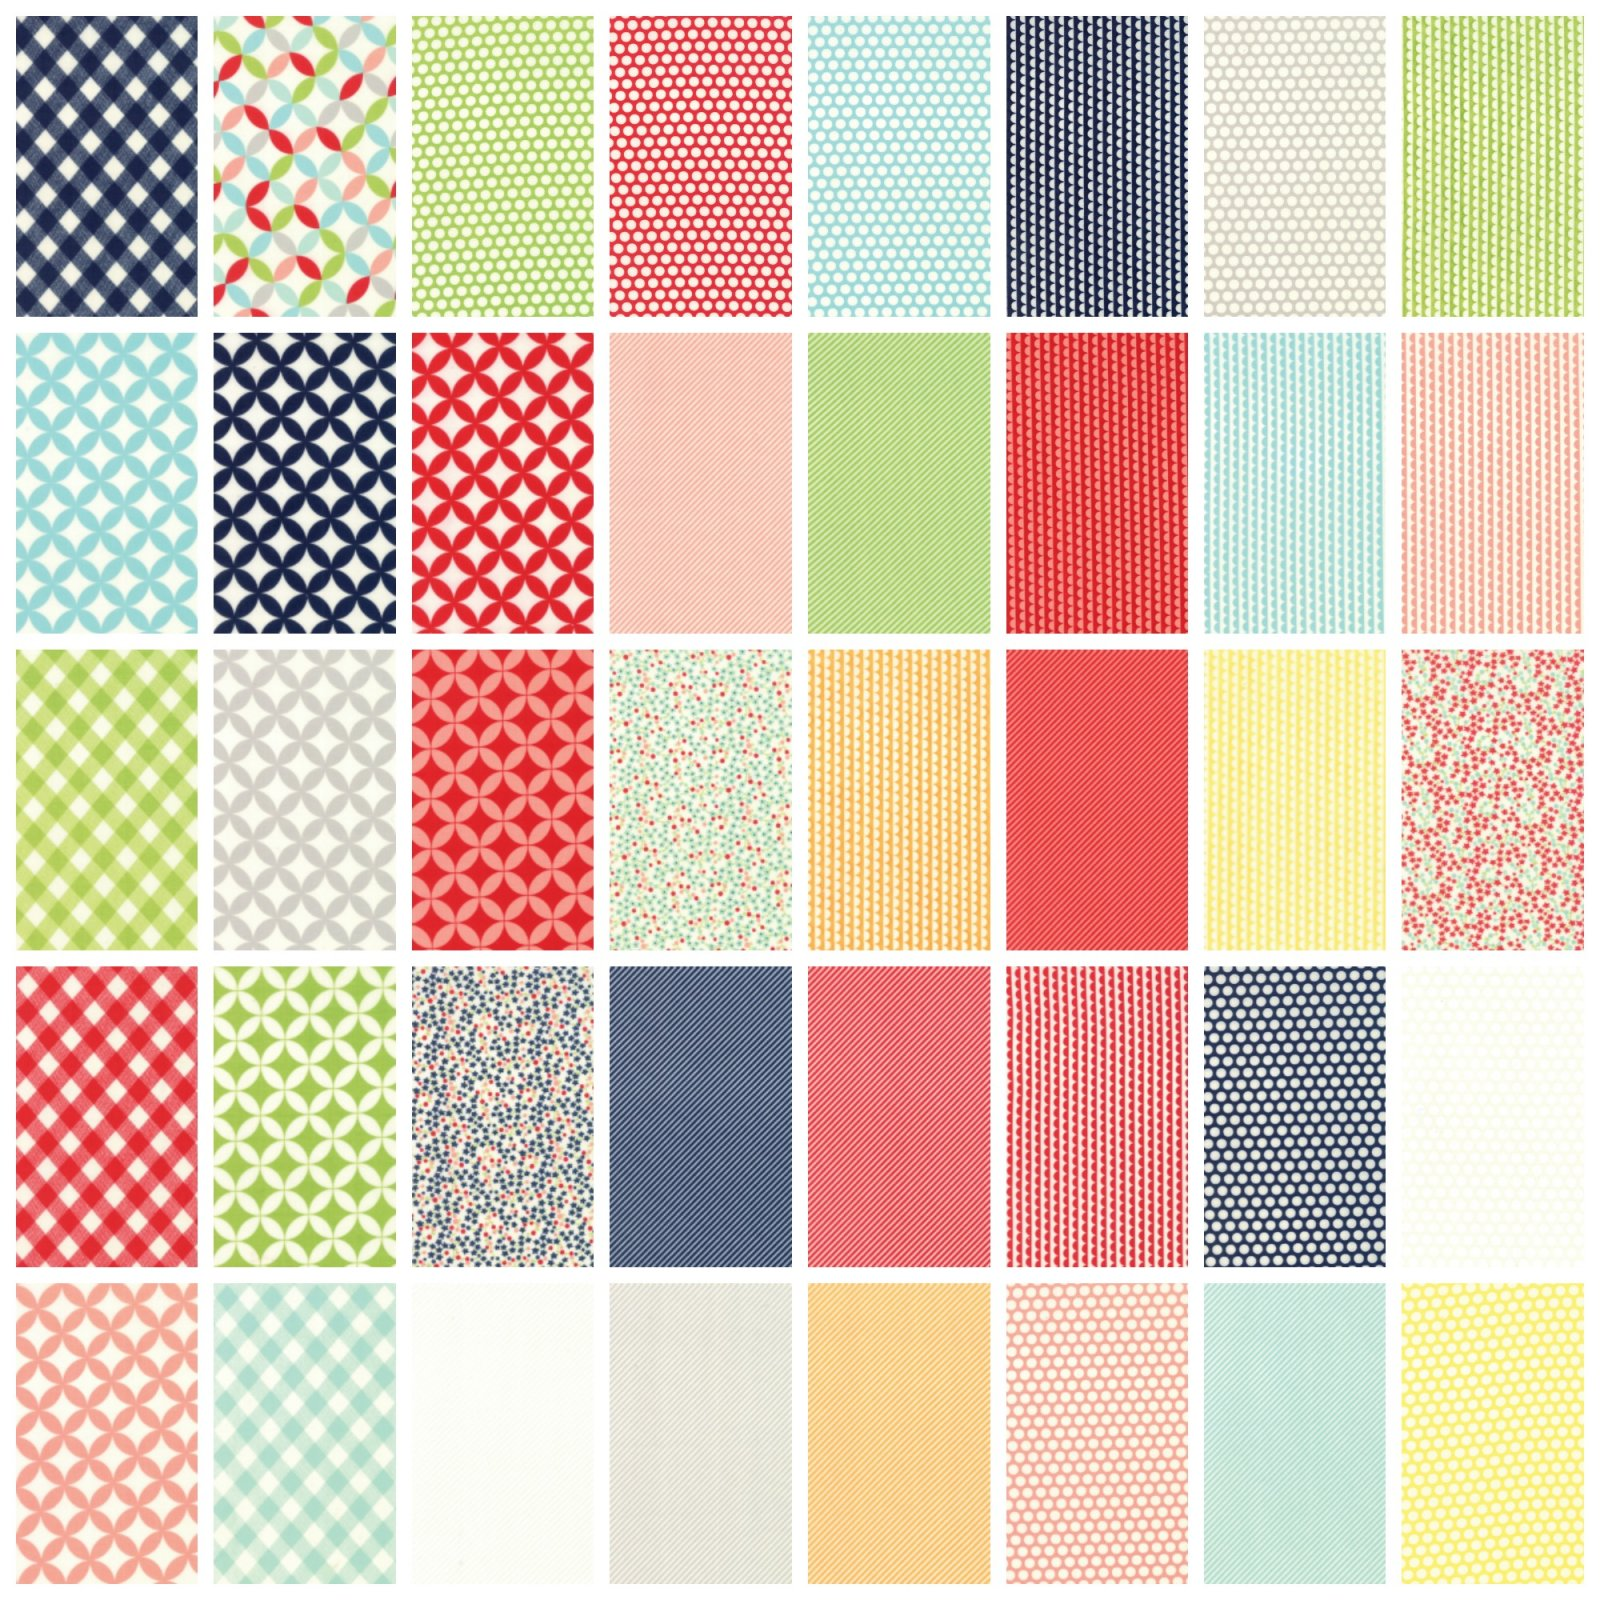 Bonnie & Camille - Basics - Fat Quarter Bundle